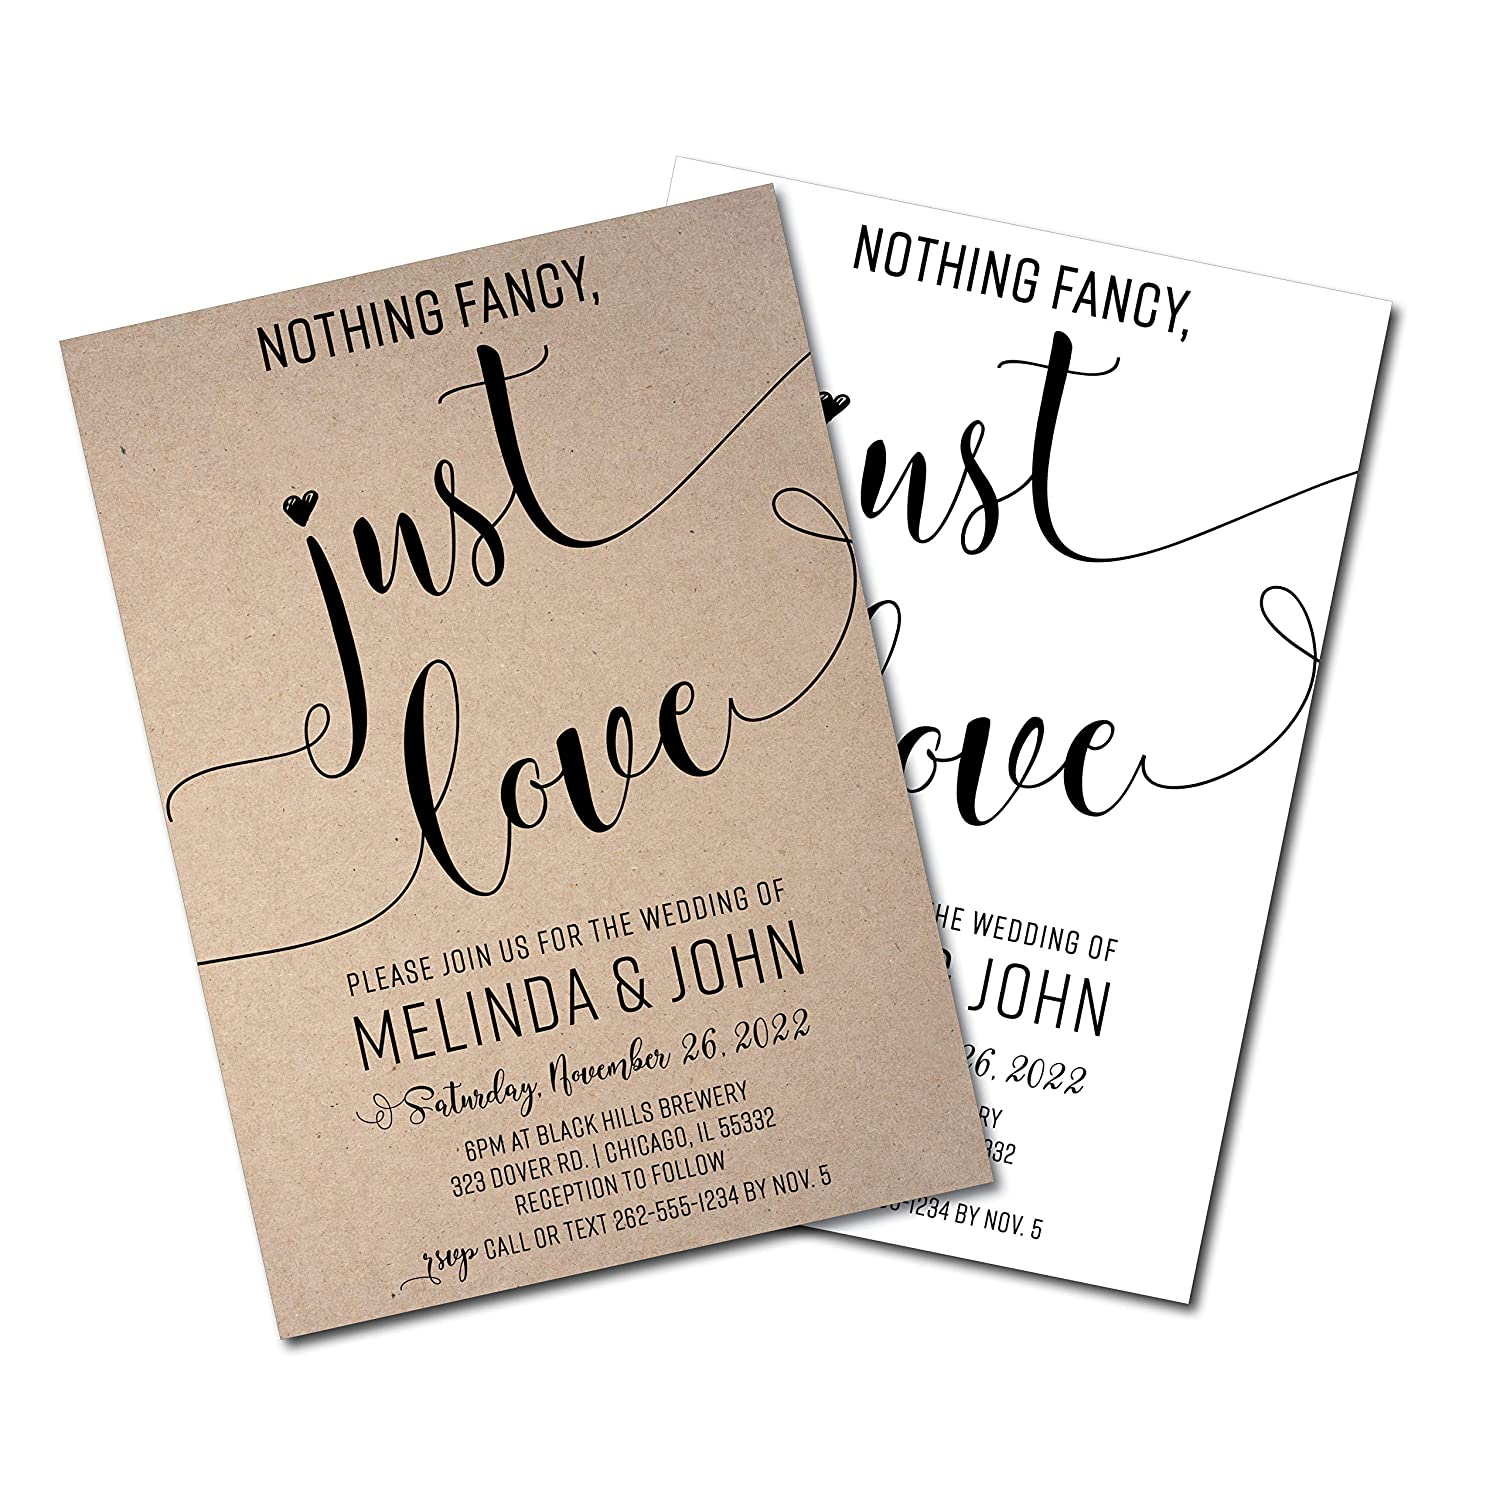 Nothing Fancy Just Credence Don't miss the campaign Love Modern Black Invitation Wedding and